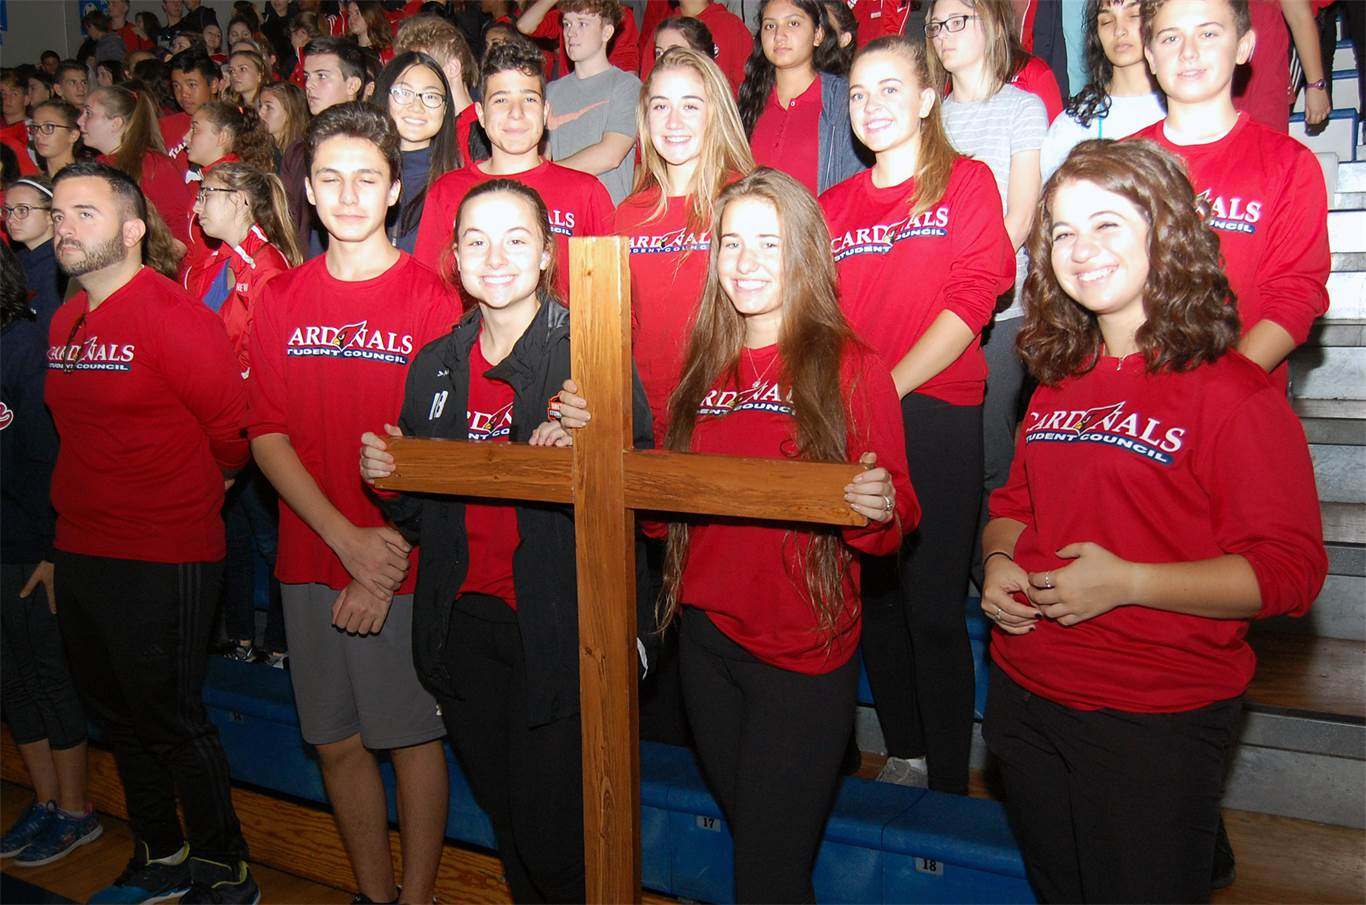 Students from Cardinal Newman Catholic Secondary School attend a Eucharistic Celebration at Cathedral High School on Oct. 15. Close to 3,000 students and staff take part in the annual